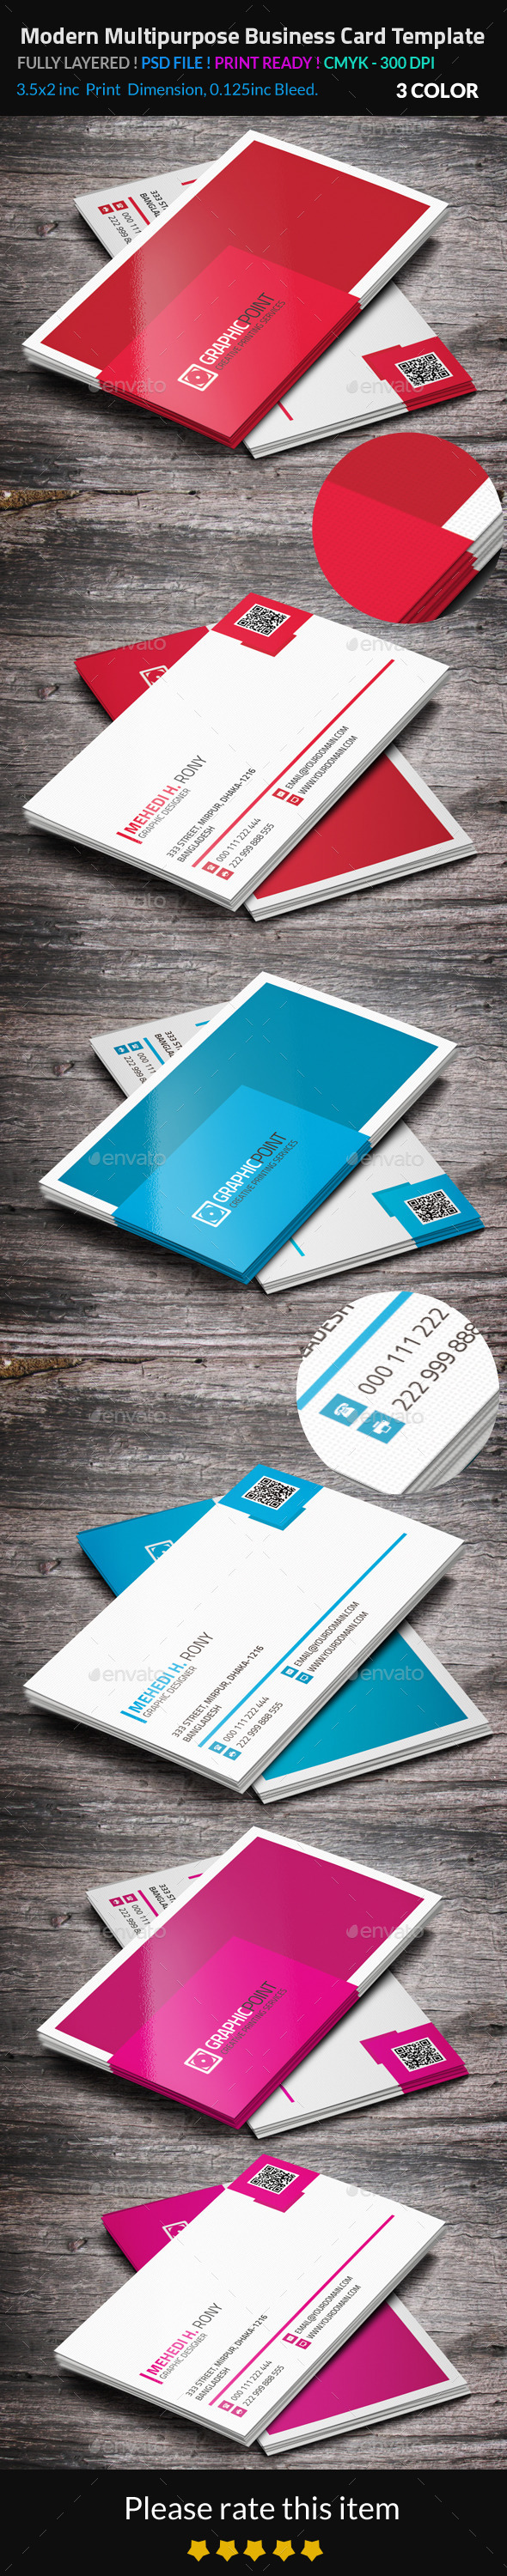 GraphicRiver Modern Multipurpose Business Card Template 8842828